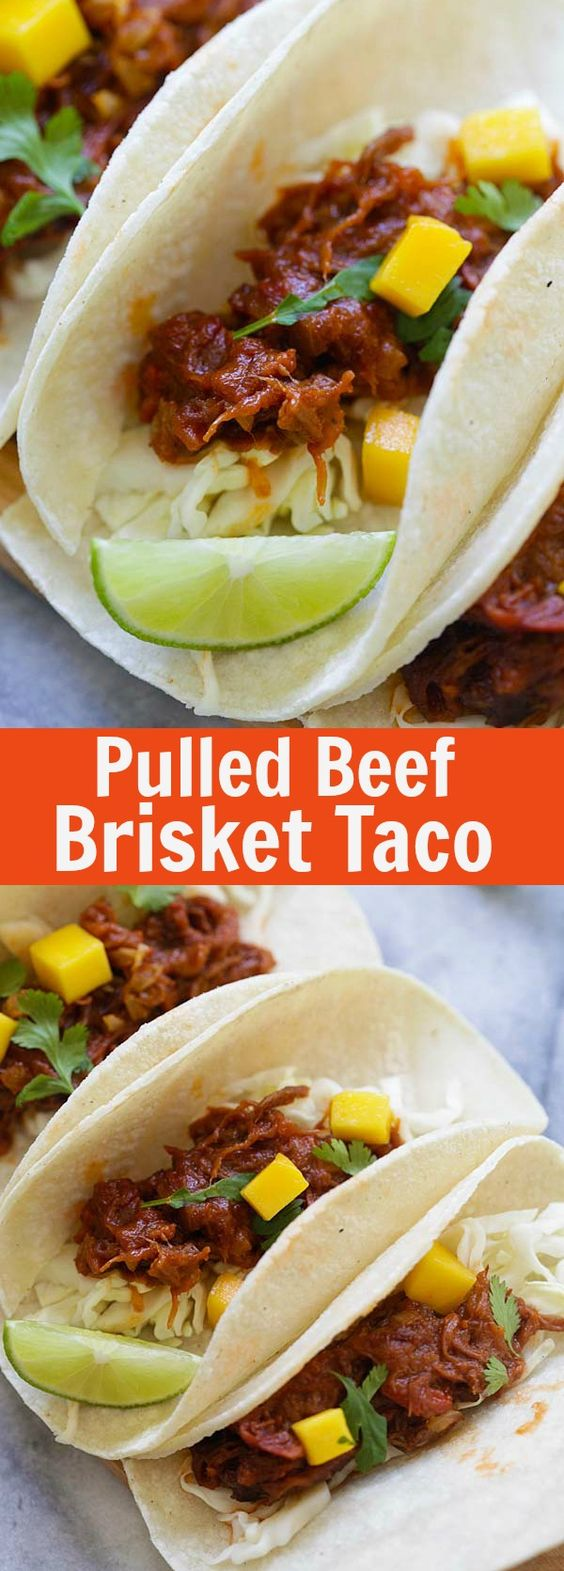 Pulled Beef Brisket Taco - the easiest homemade beef brisket taco with mango. These tacos come together in 20 minutes, so delicious | rasamalaysia.com